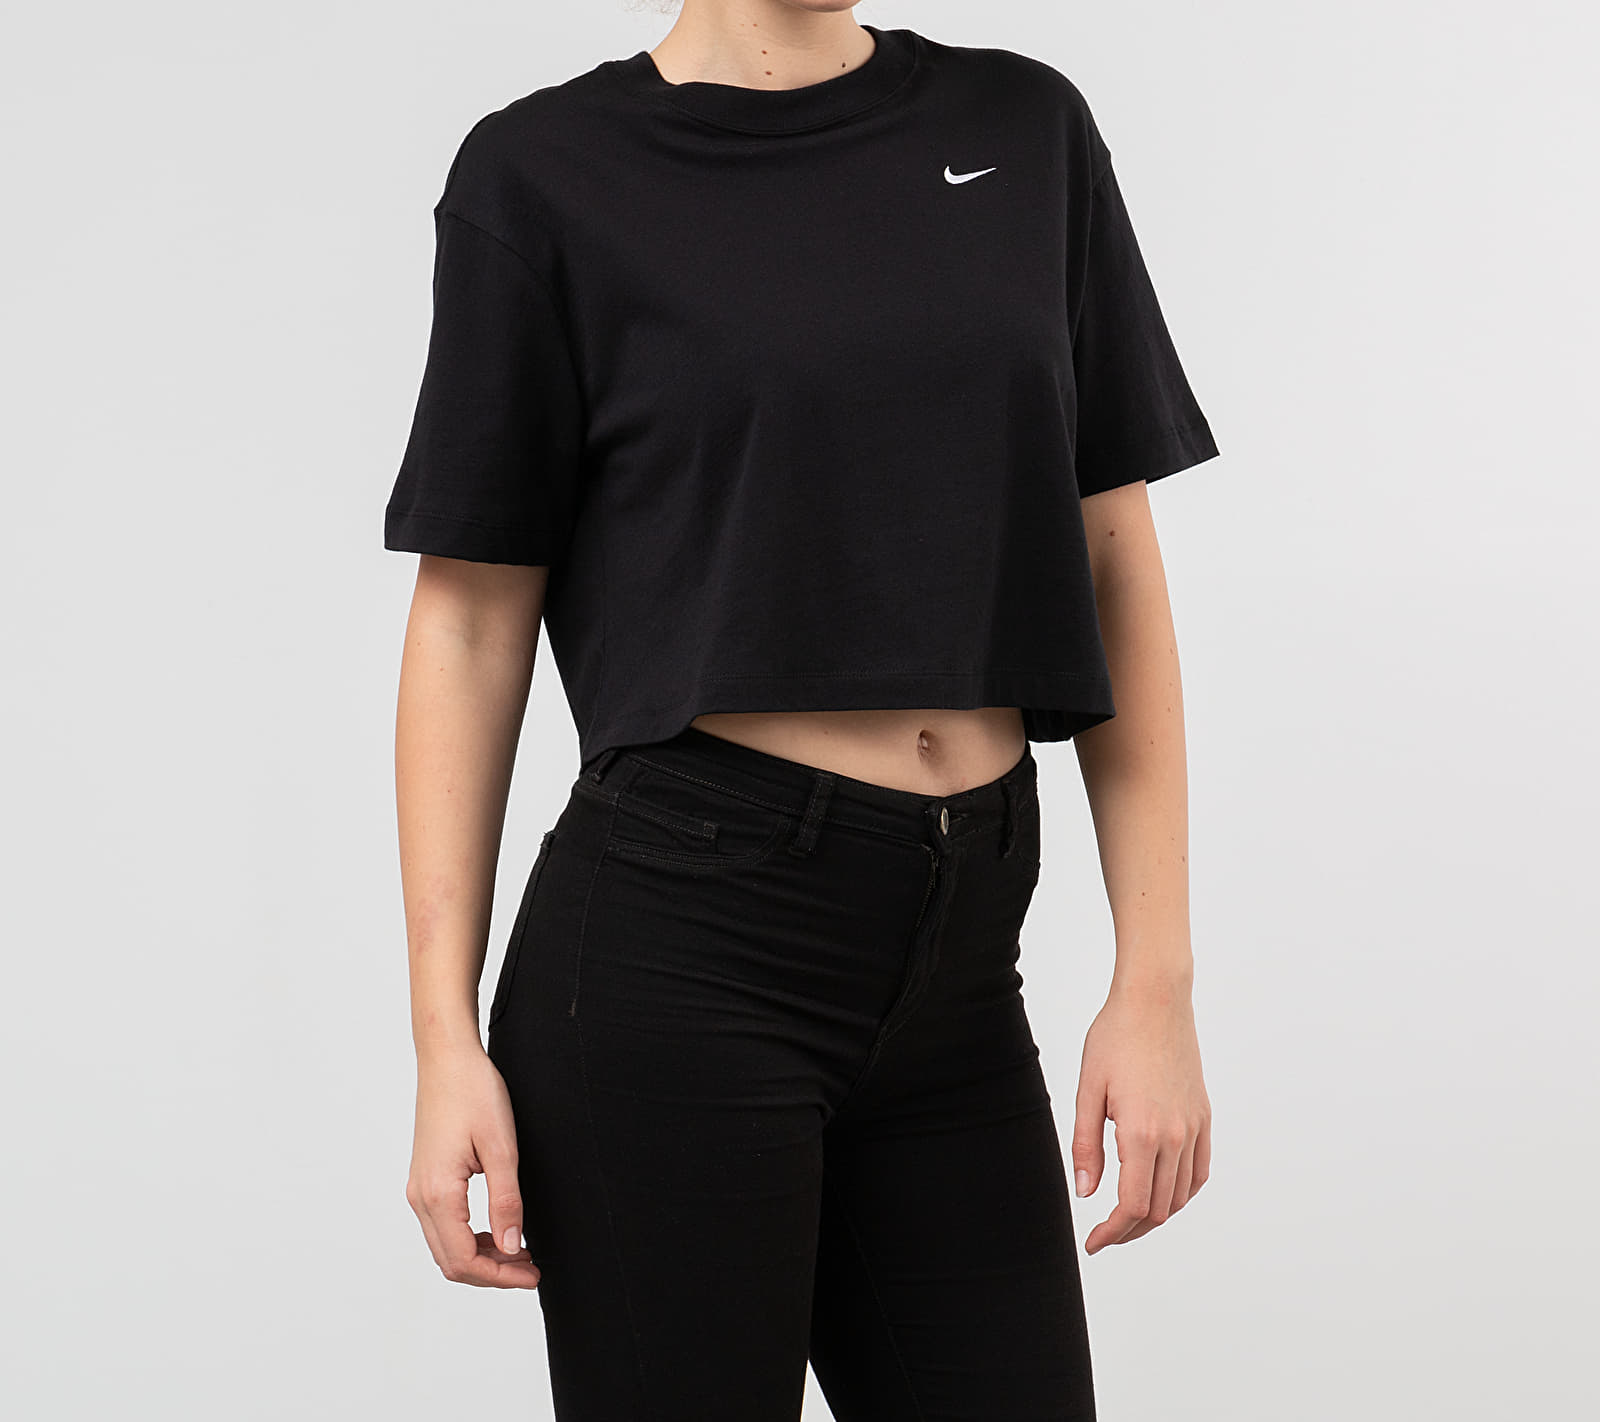 Nike Sportswear Essential Top Black/ White